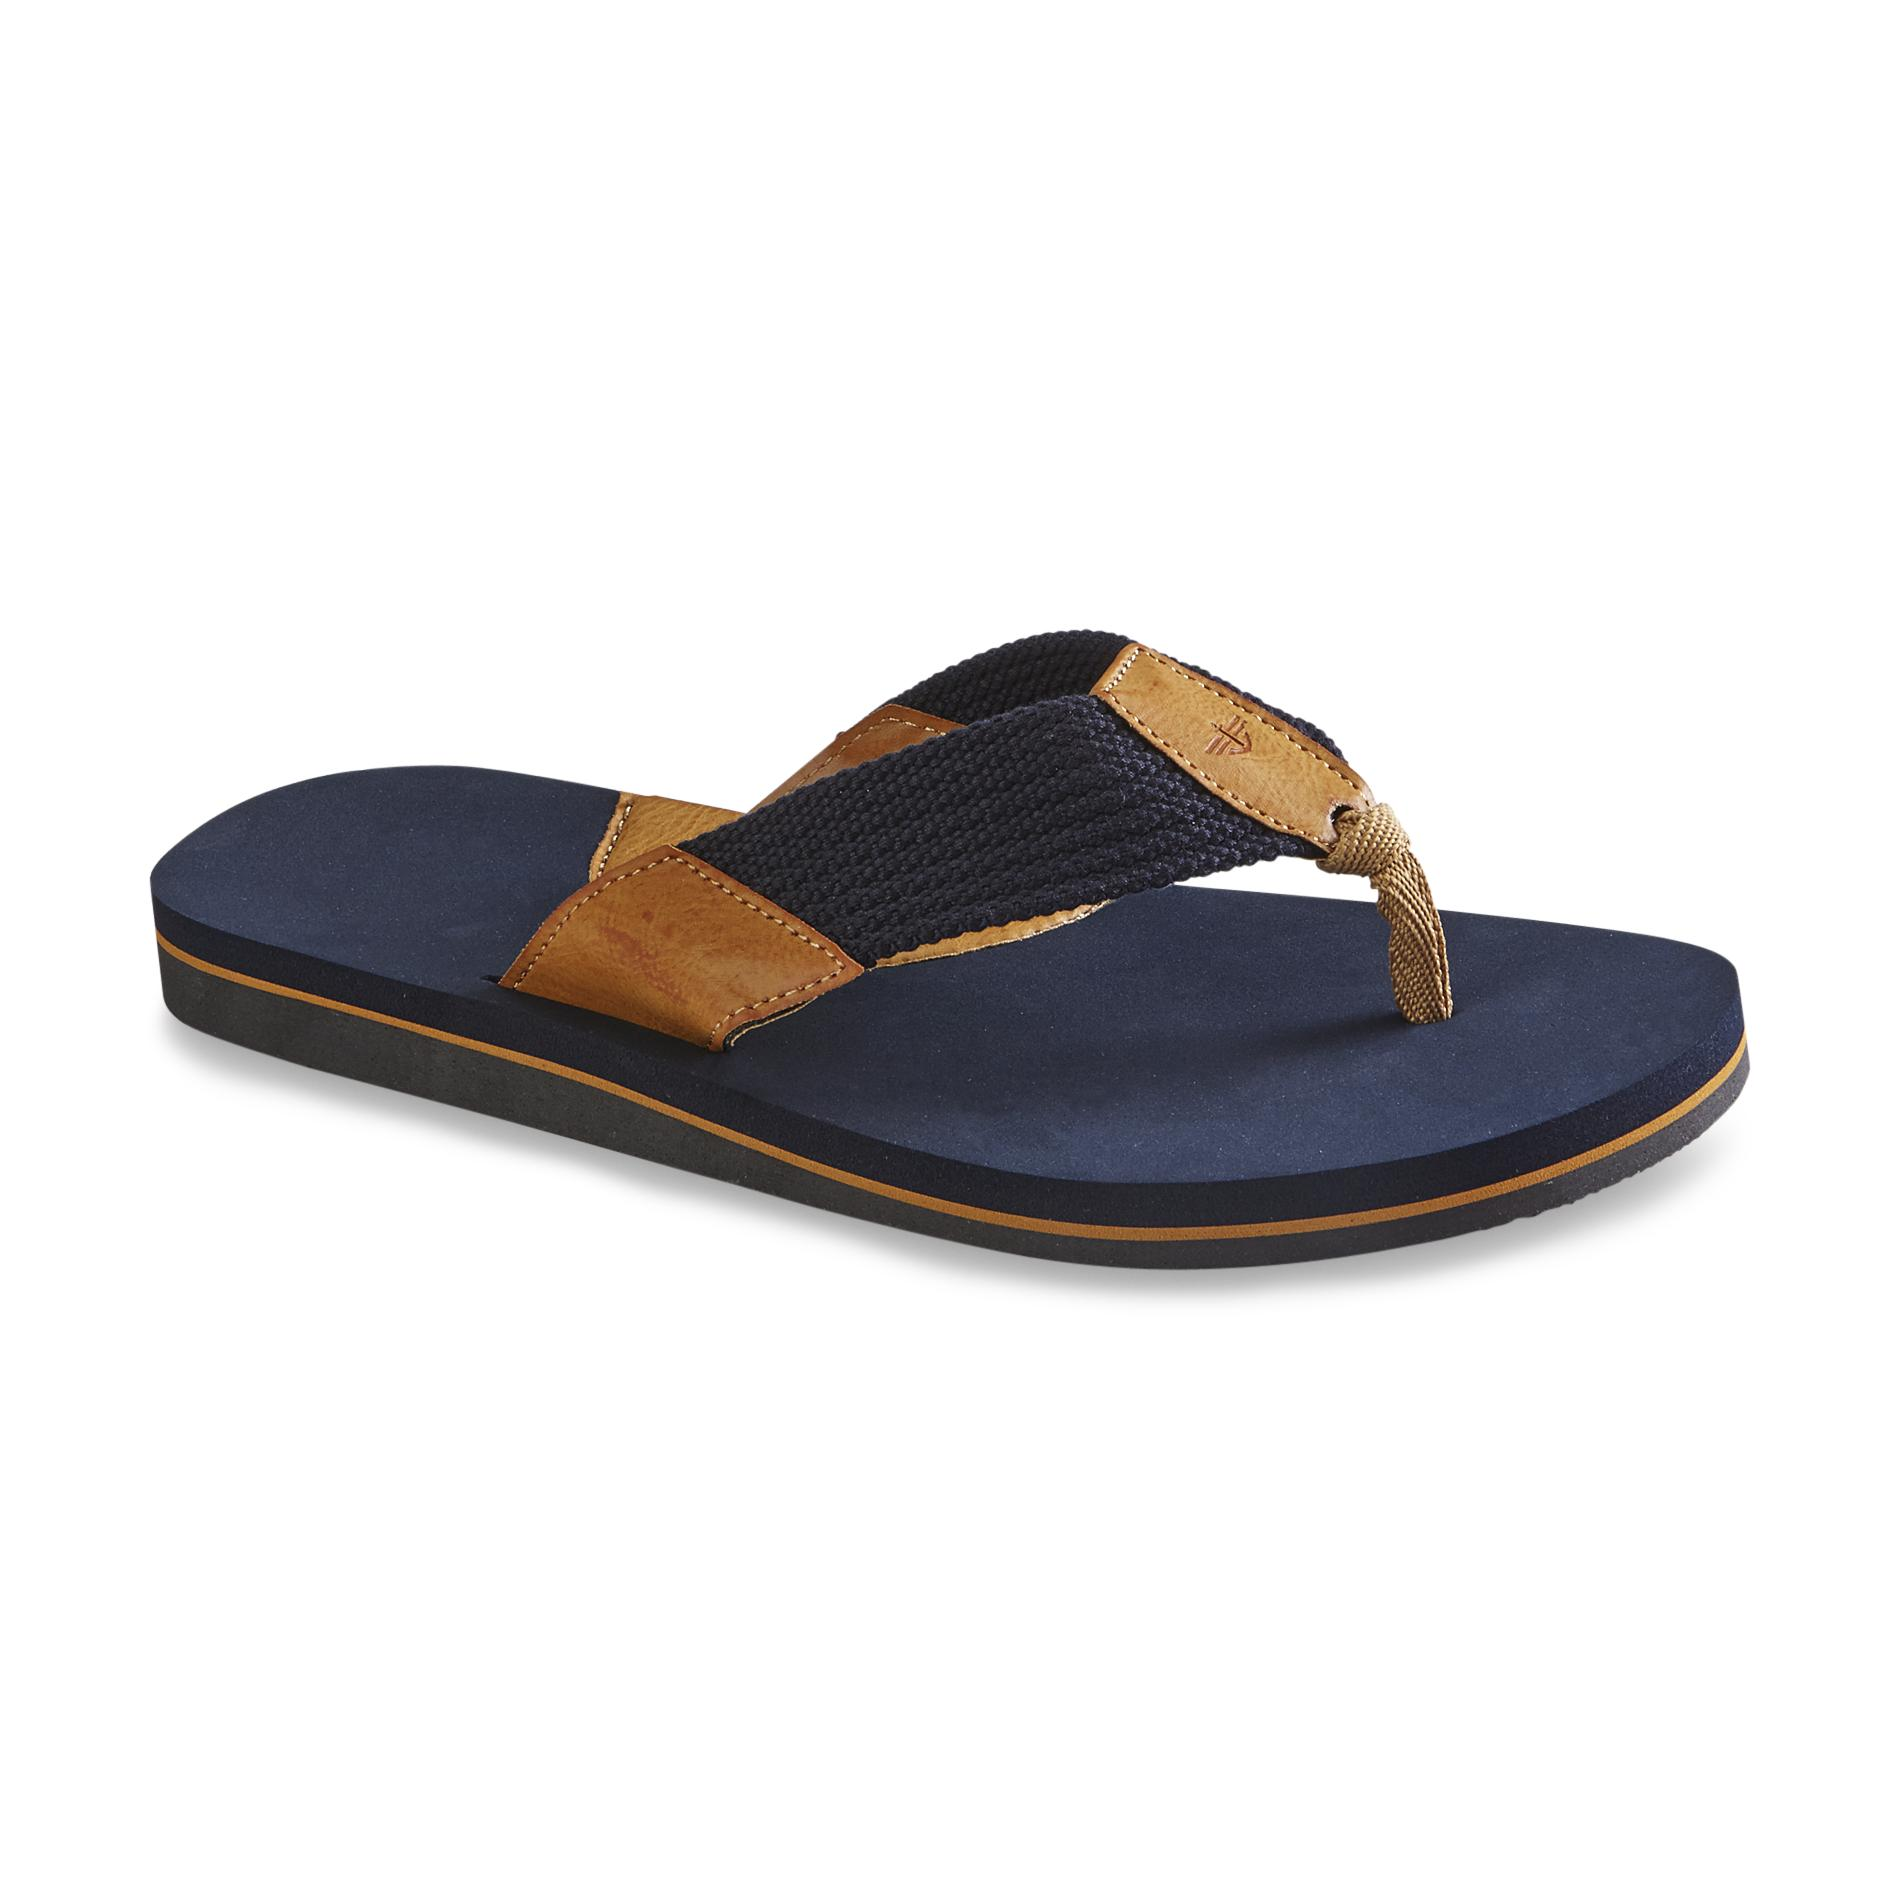 Dockers Men's Navy/Tan Flip-Flop